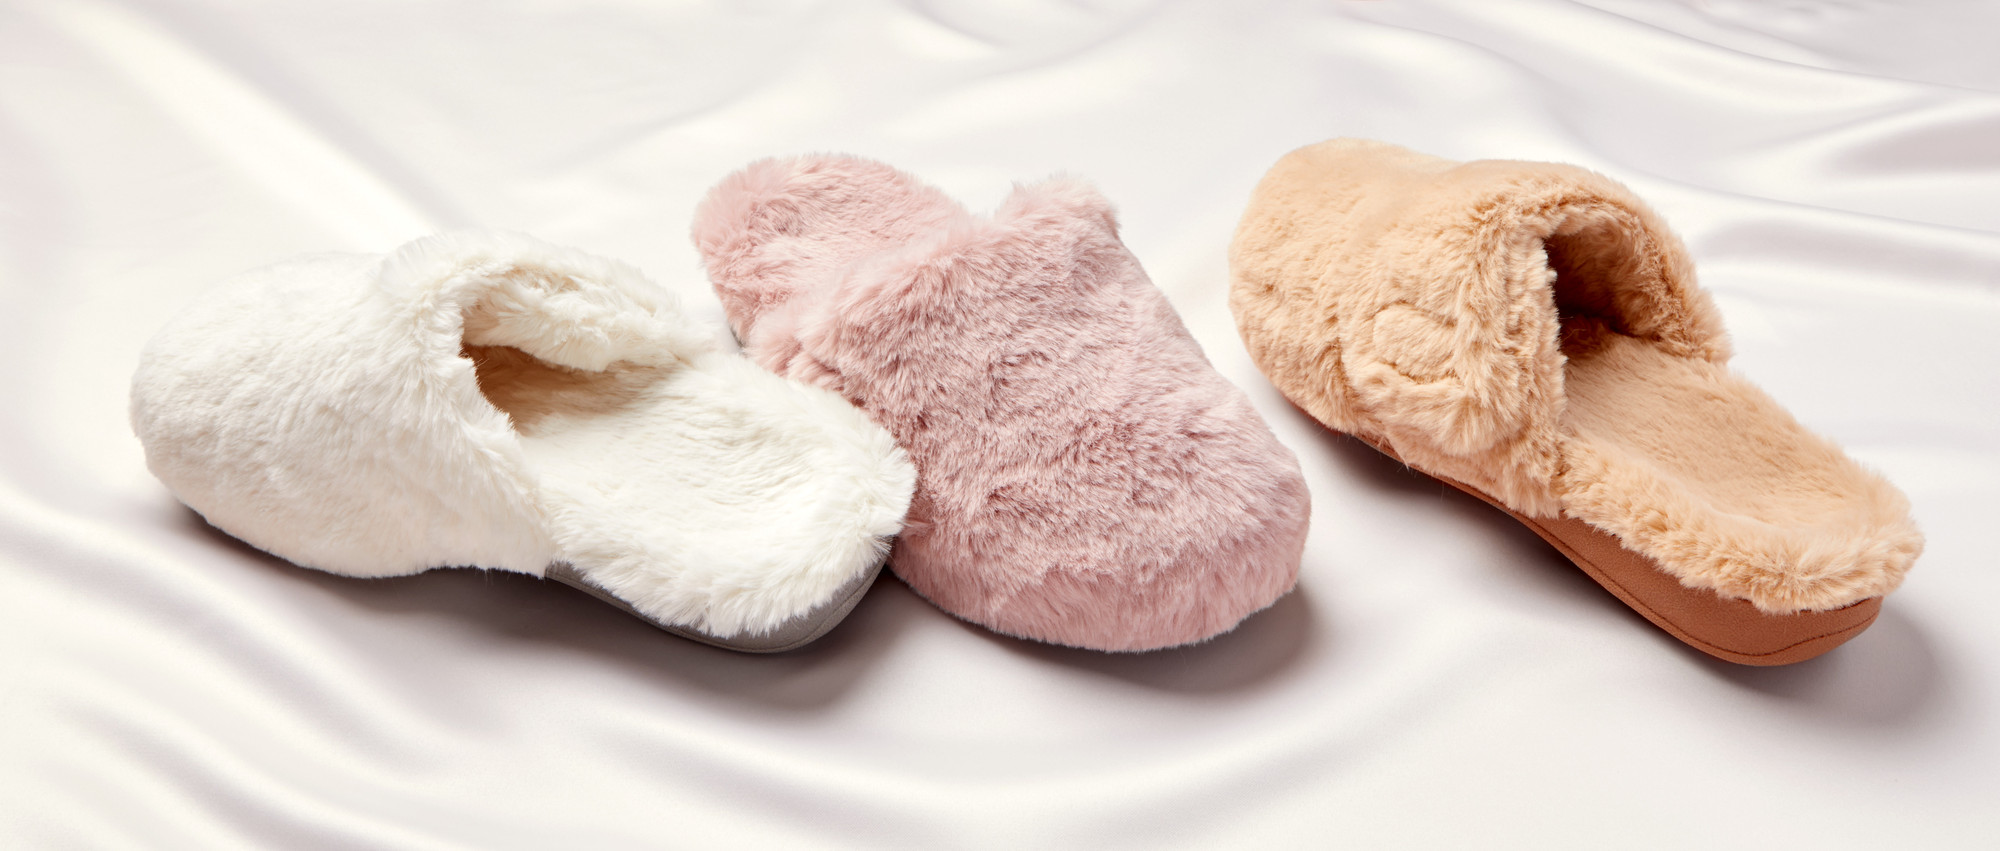 Buy Supportive Slippers | Vionic Shoes